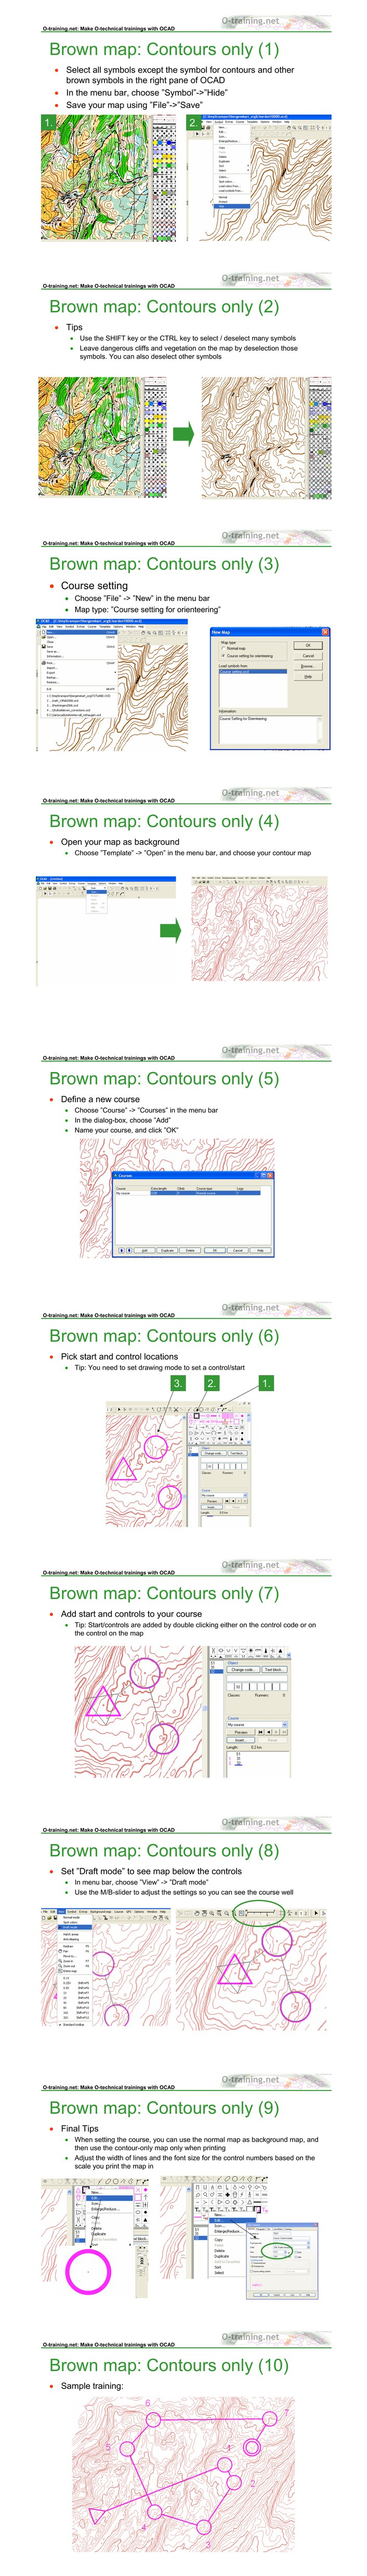 Image:Brown map ocad.jpg